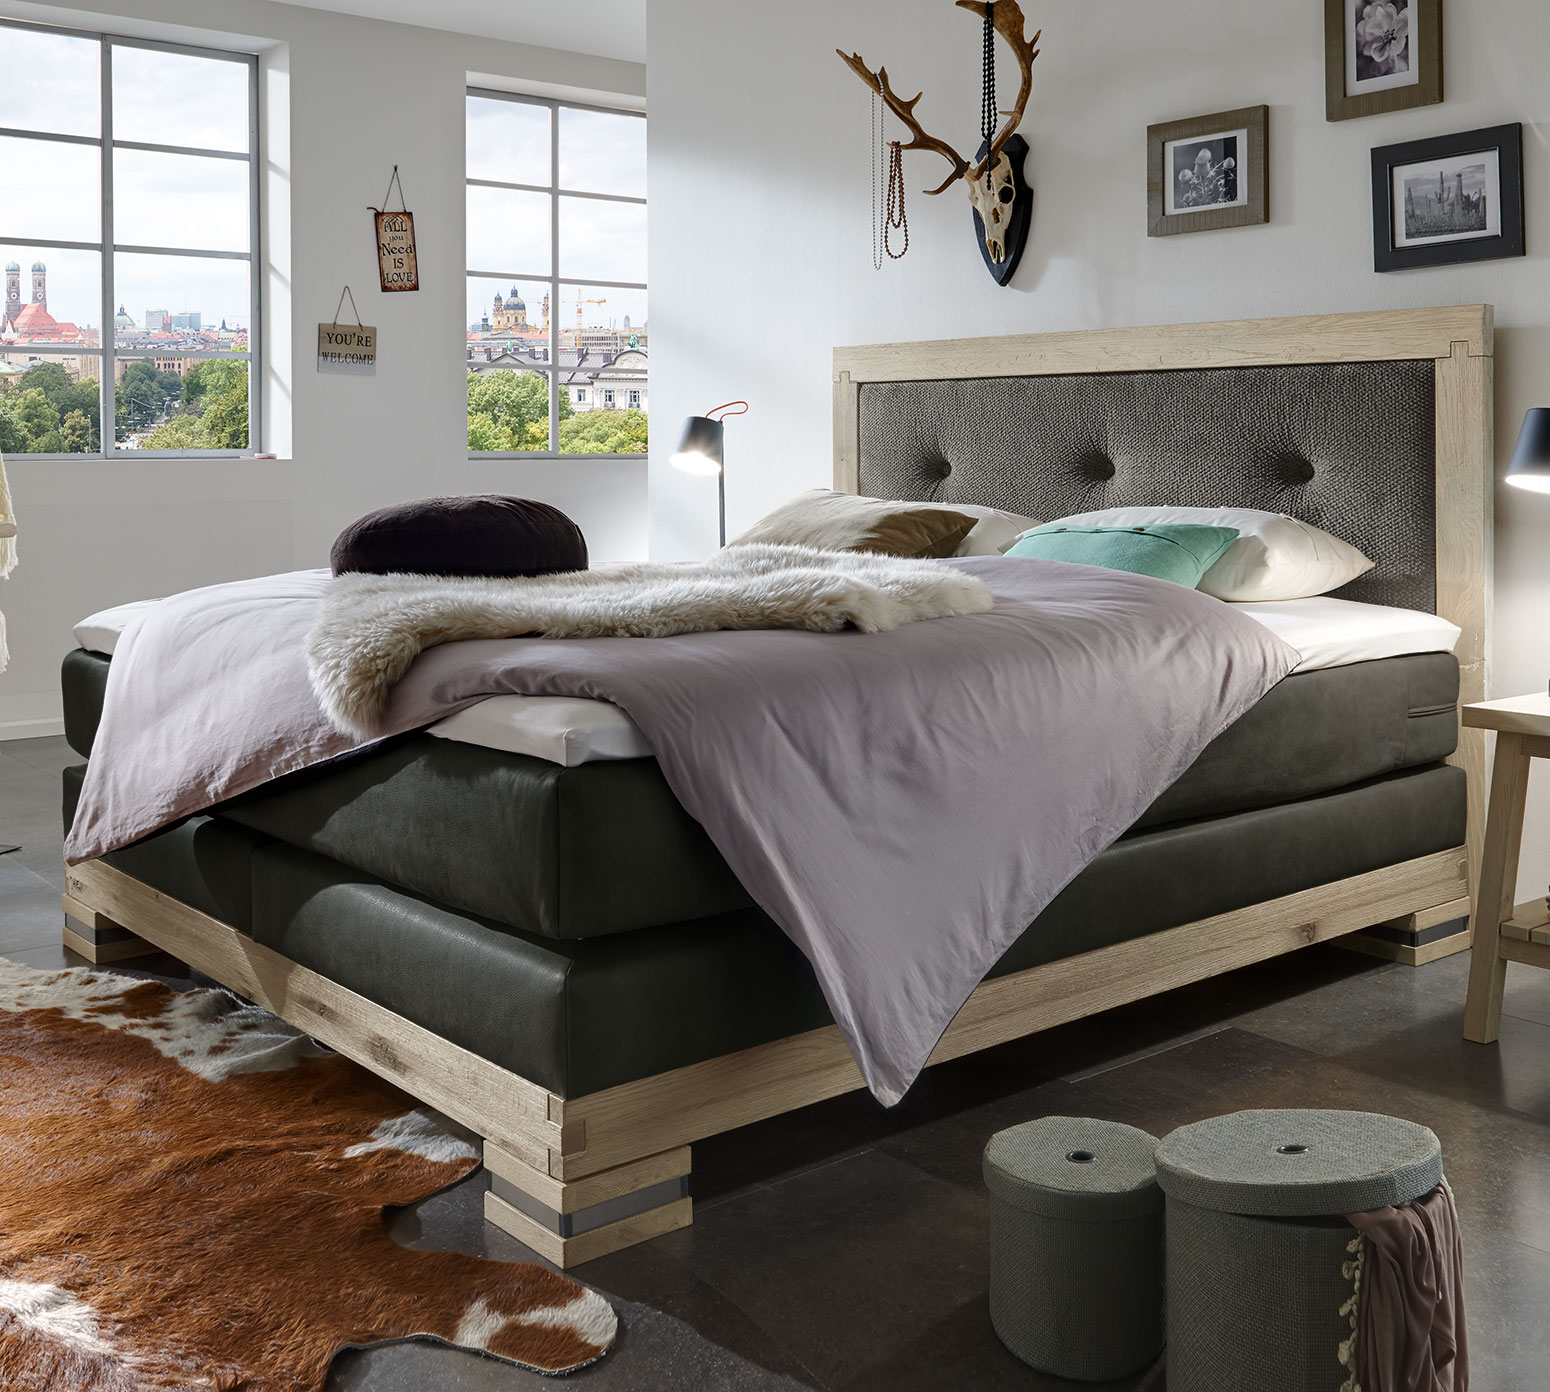 boxspringbett mit holz boxspringbett holz boxspringbett holz haus dekoration boxspringbett. Black Bedroom Furniture Sets. Home Design Ideas